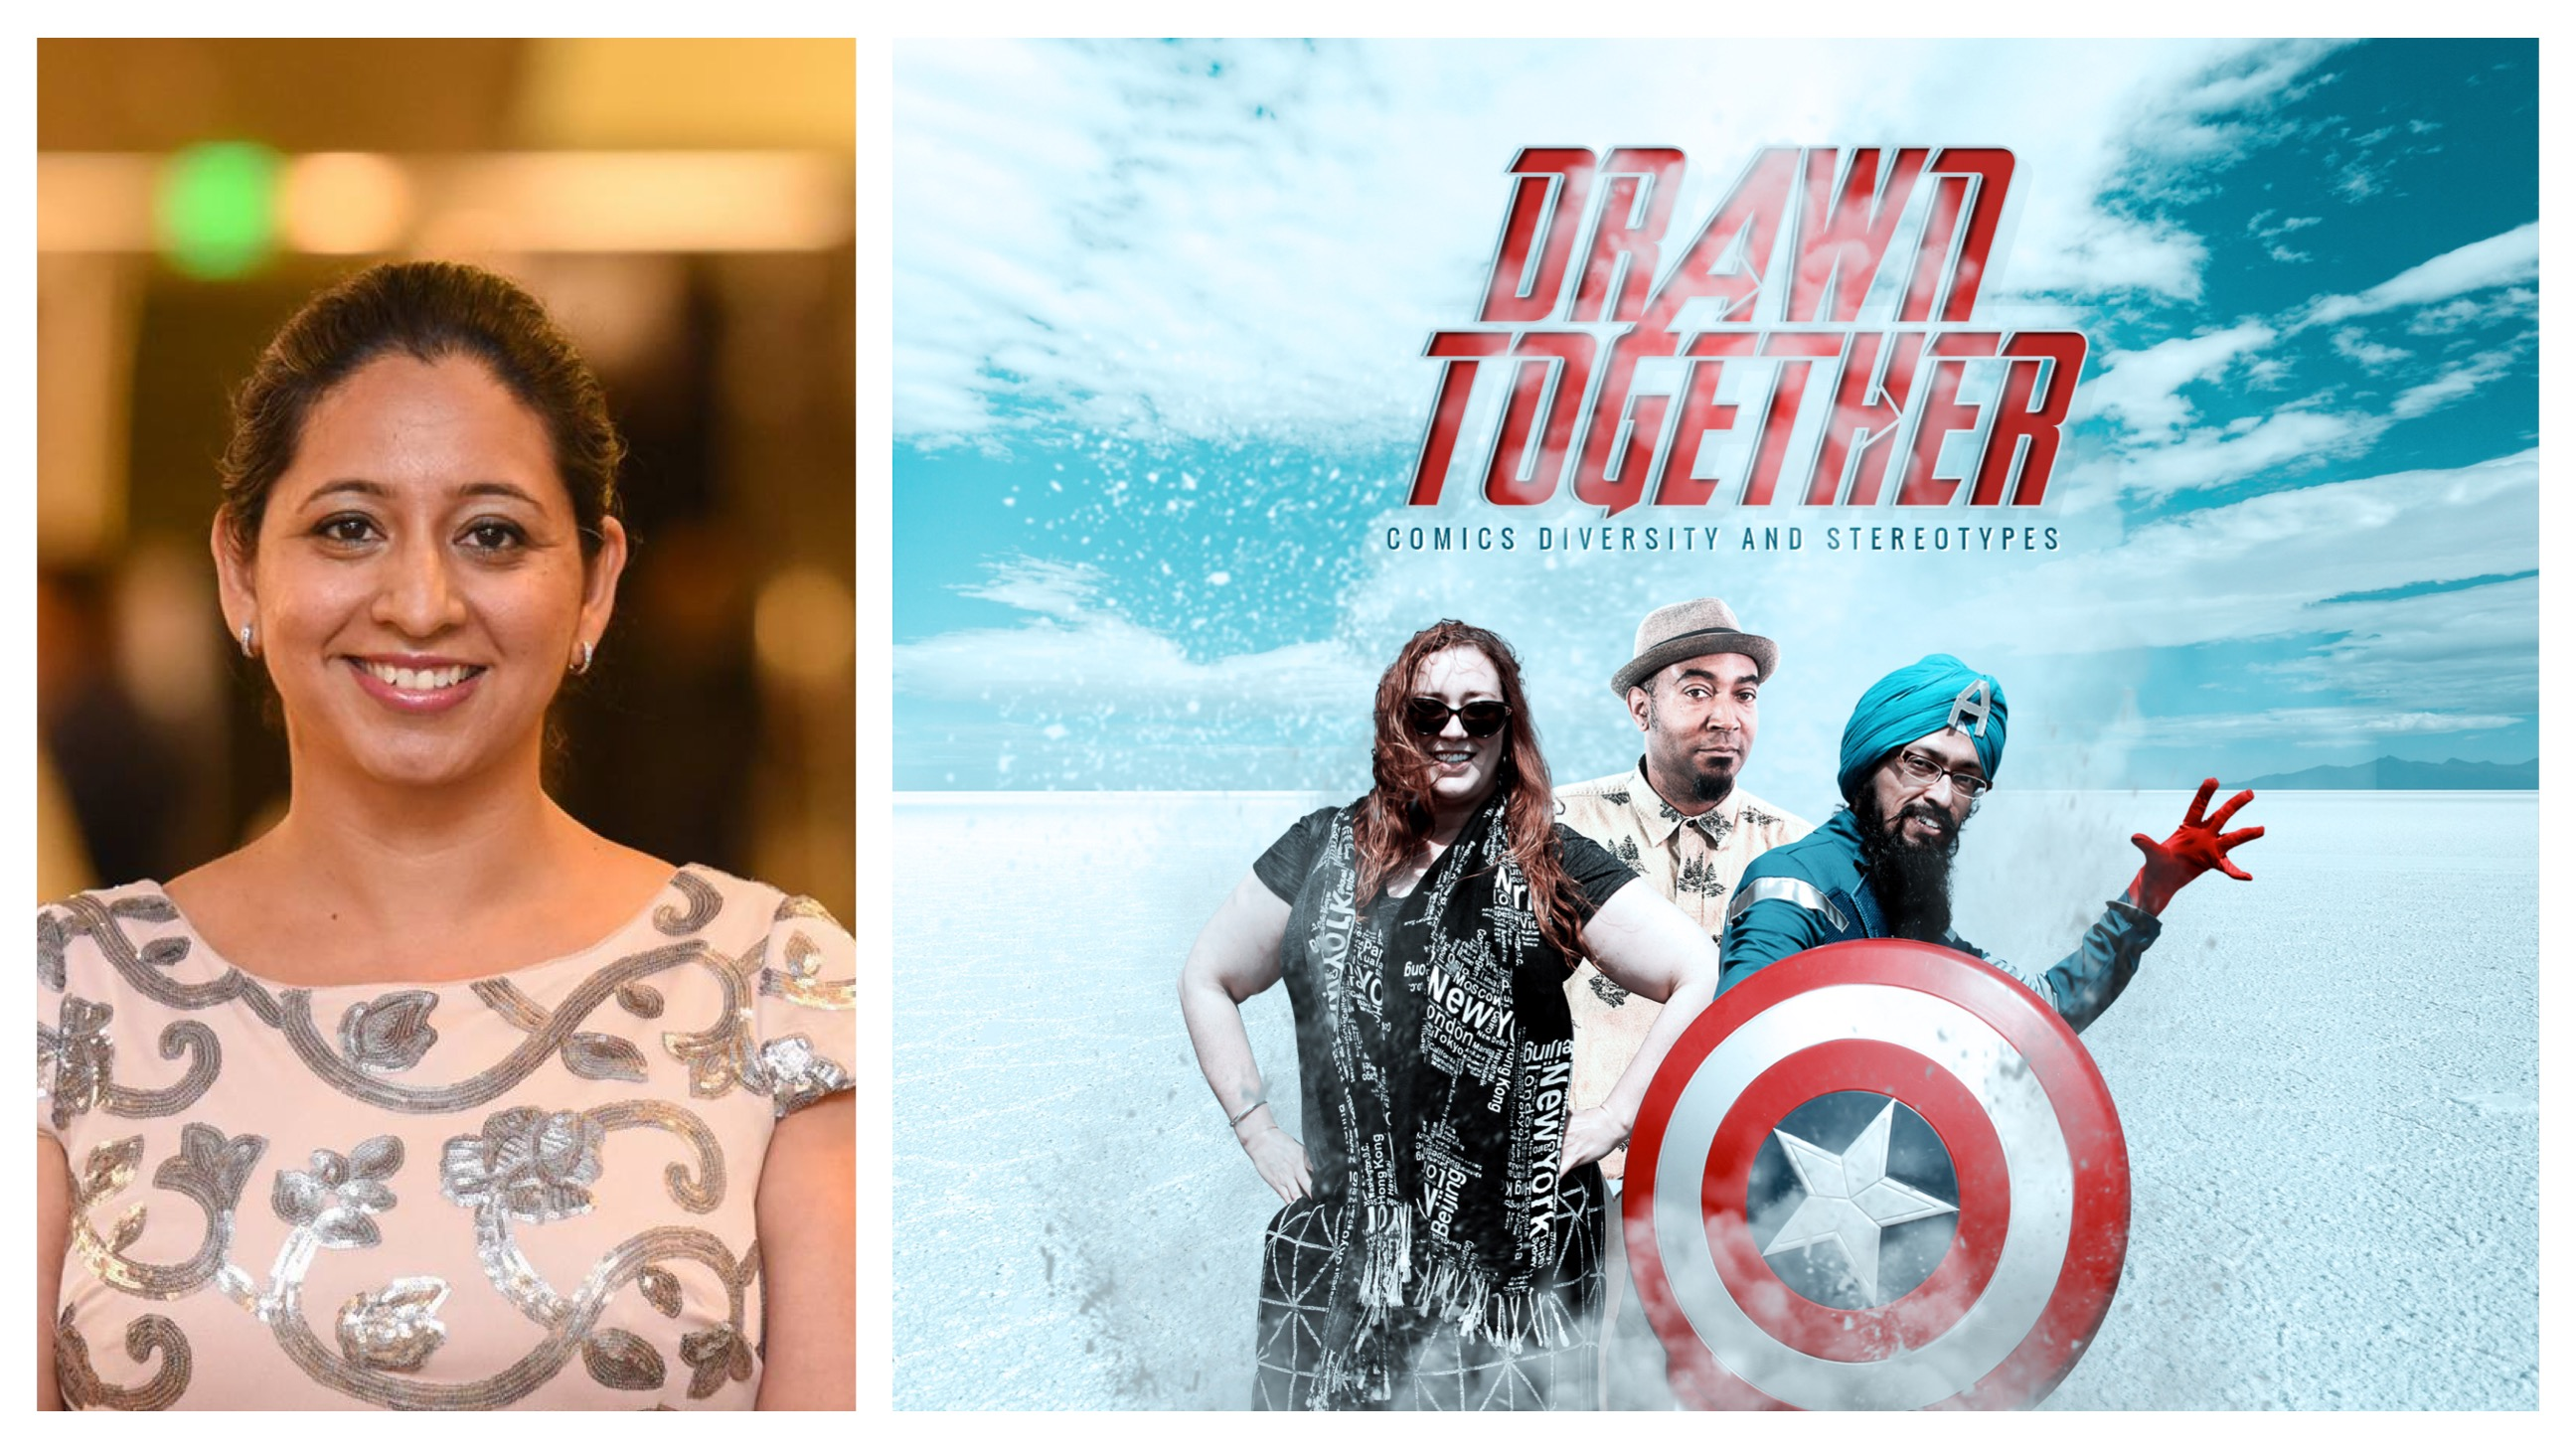 "A South Asian woman with her hair tied back smiles at the camera on the left; on the right is a movie poster for ""Drawn Together"" with three diverse comic book illustrators posing as superheroes."